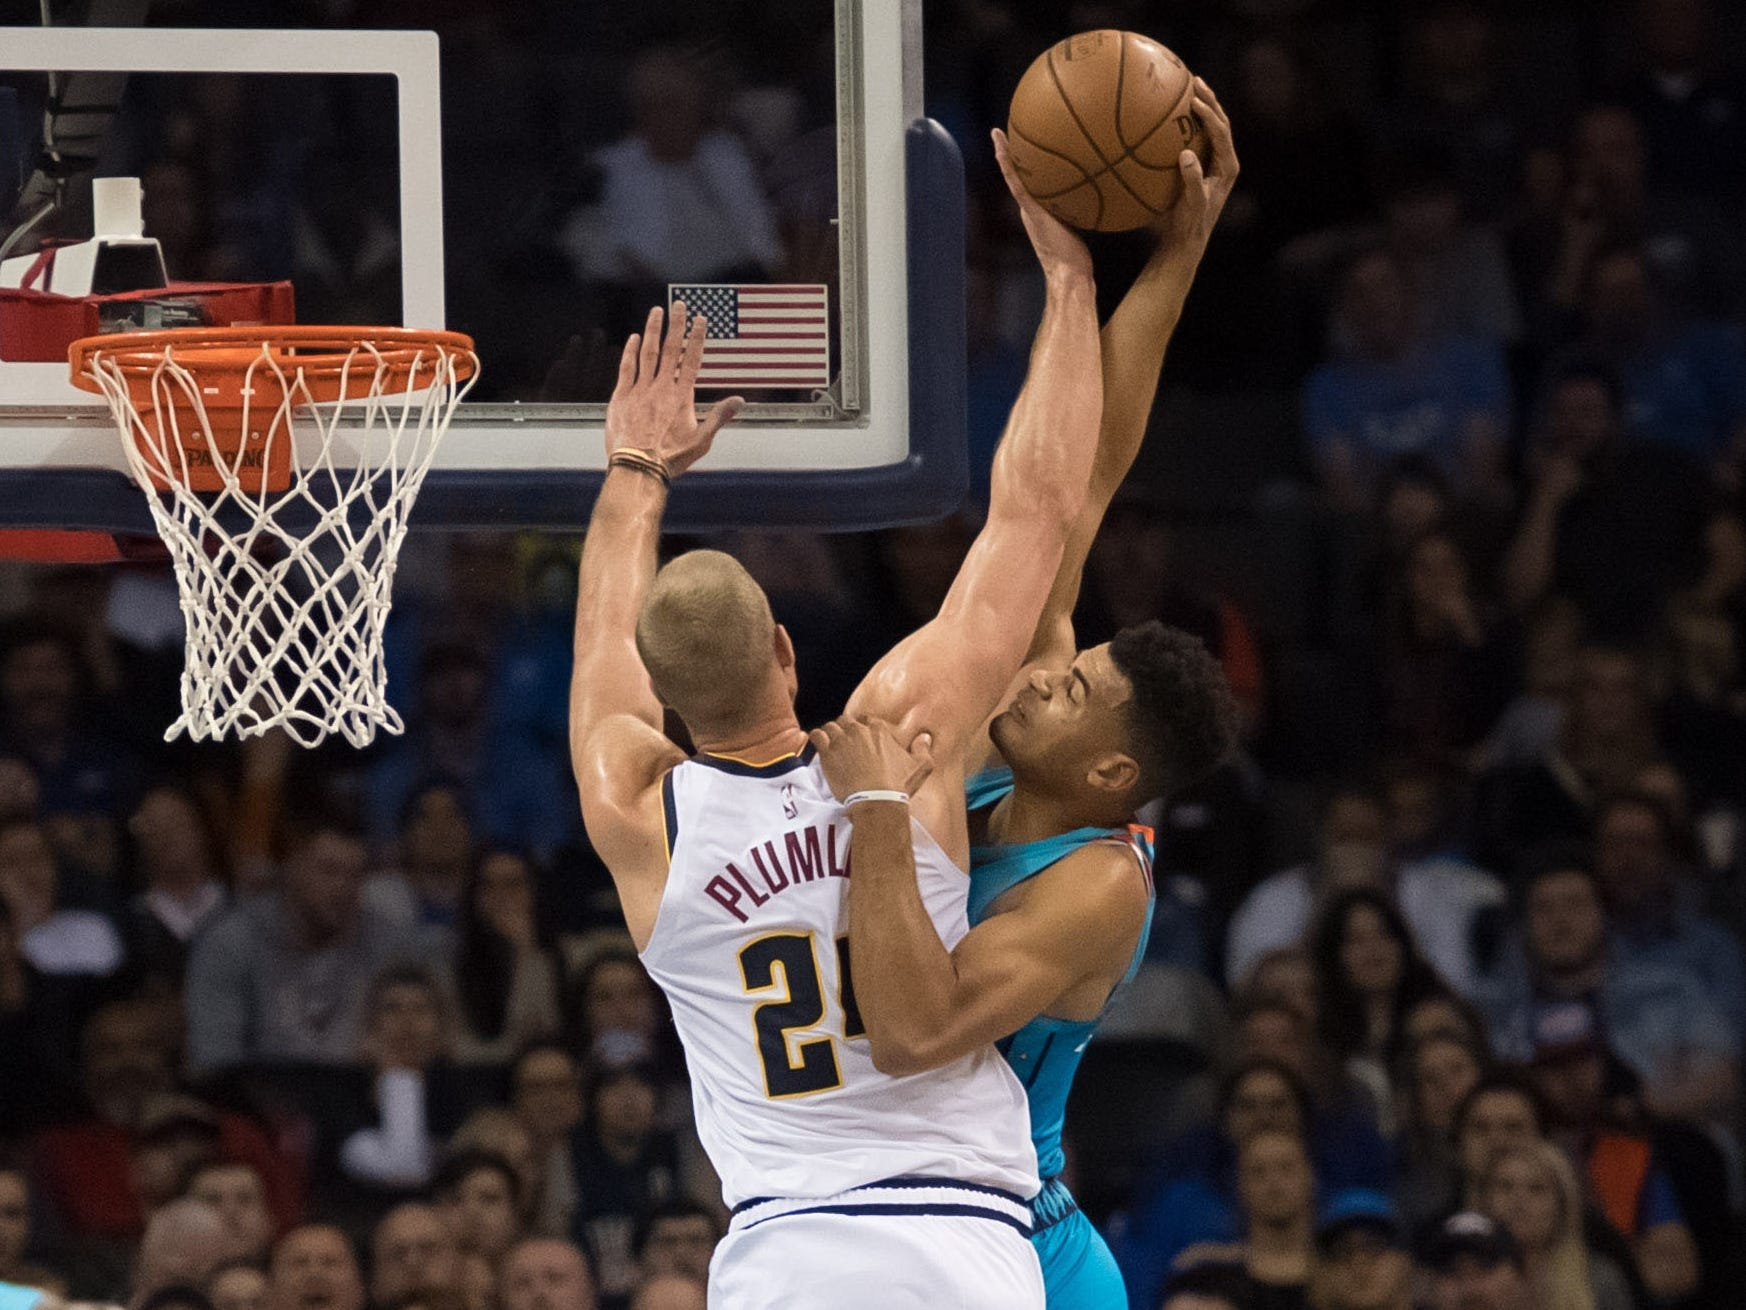 Nov. 24: Thunder guard Timothe Luwawu-Cabarrot (7) was ready to throw it down, but Nuggets defender Mason Plumlee (24) had other ideas.